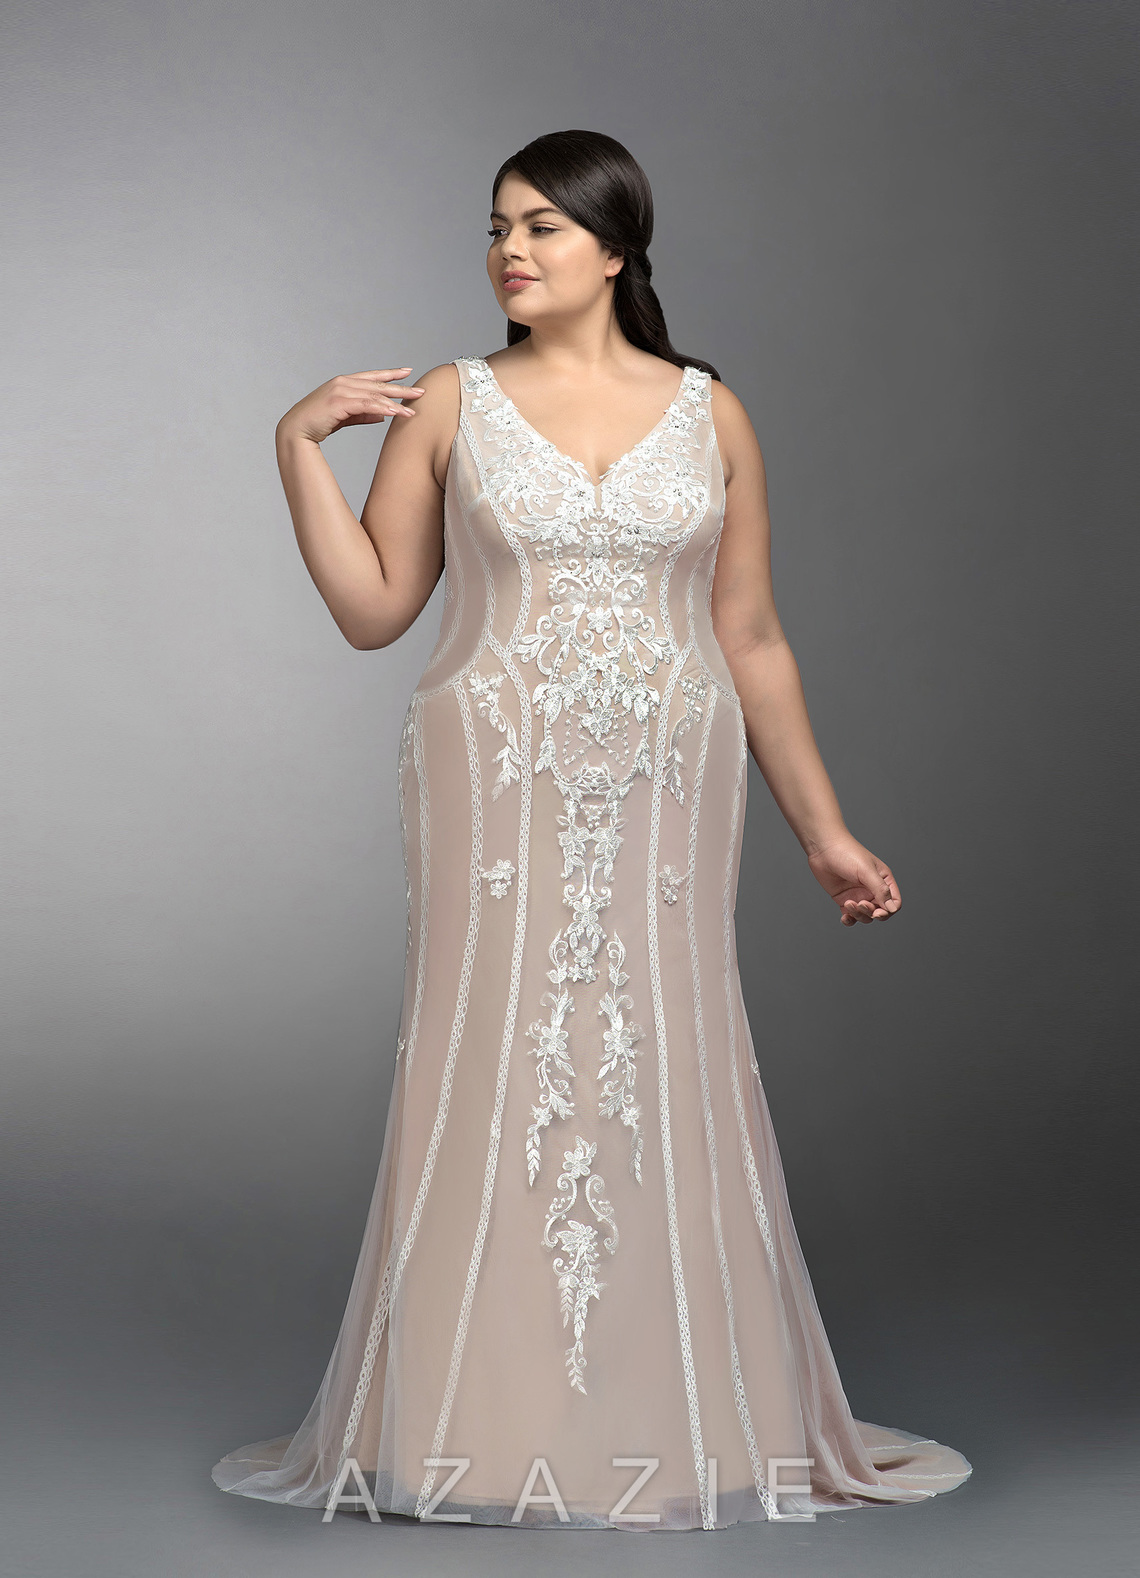 33 Gorgeous Plus Size Wedding Dresses For Every Style And